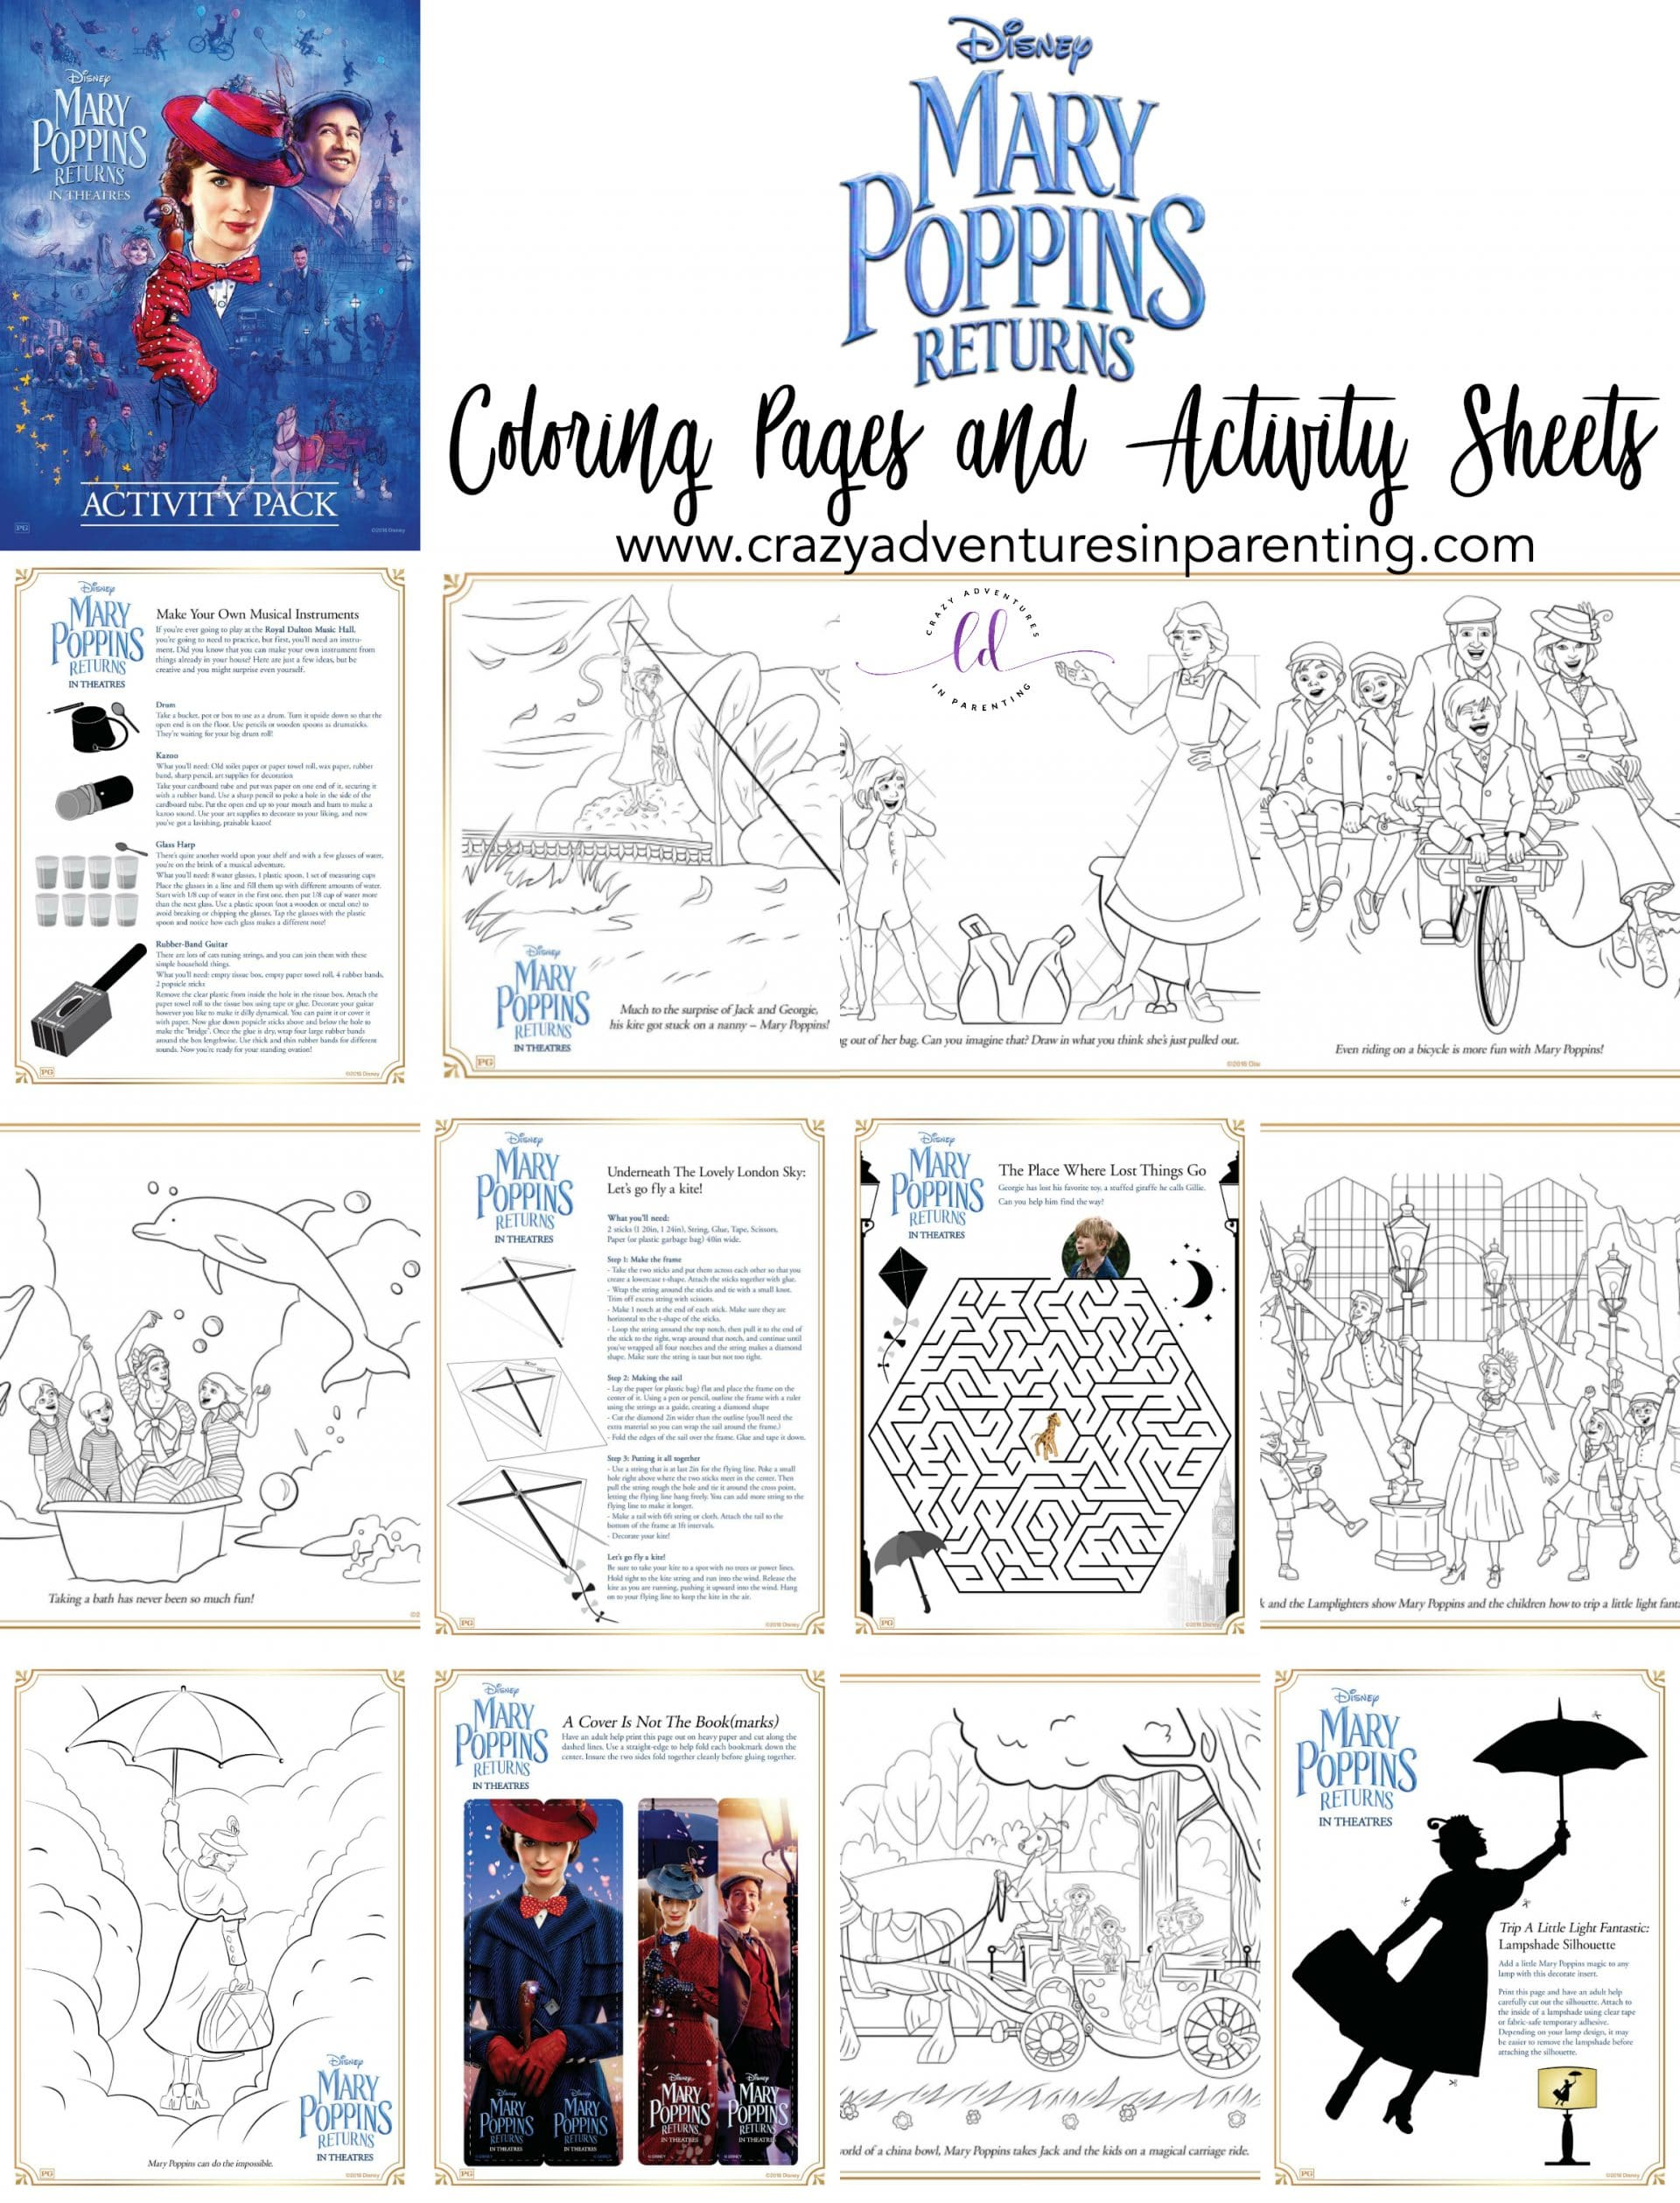 Mary Poppins Returns Coloring Pages And Activity Sheets